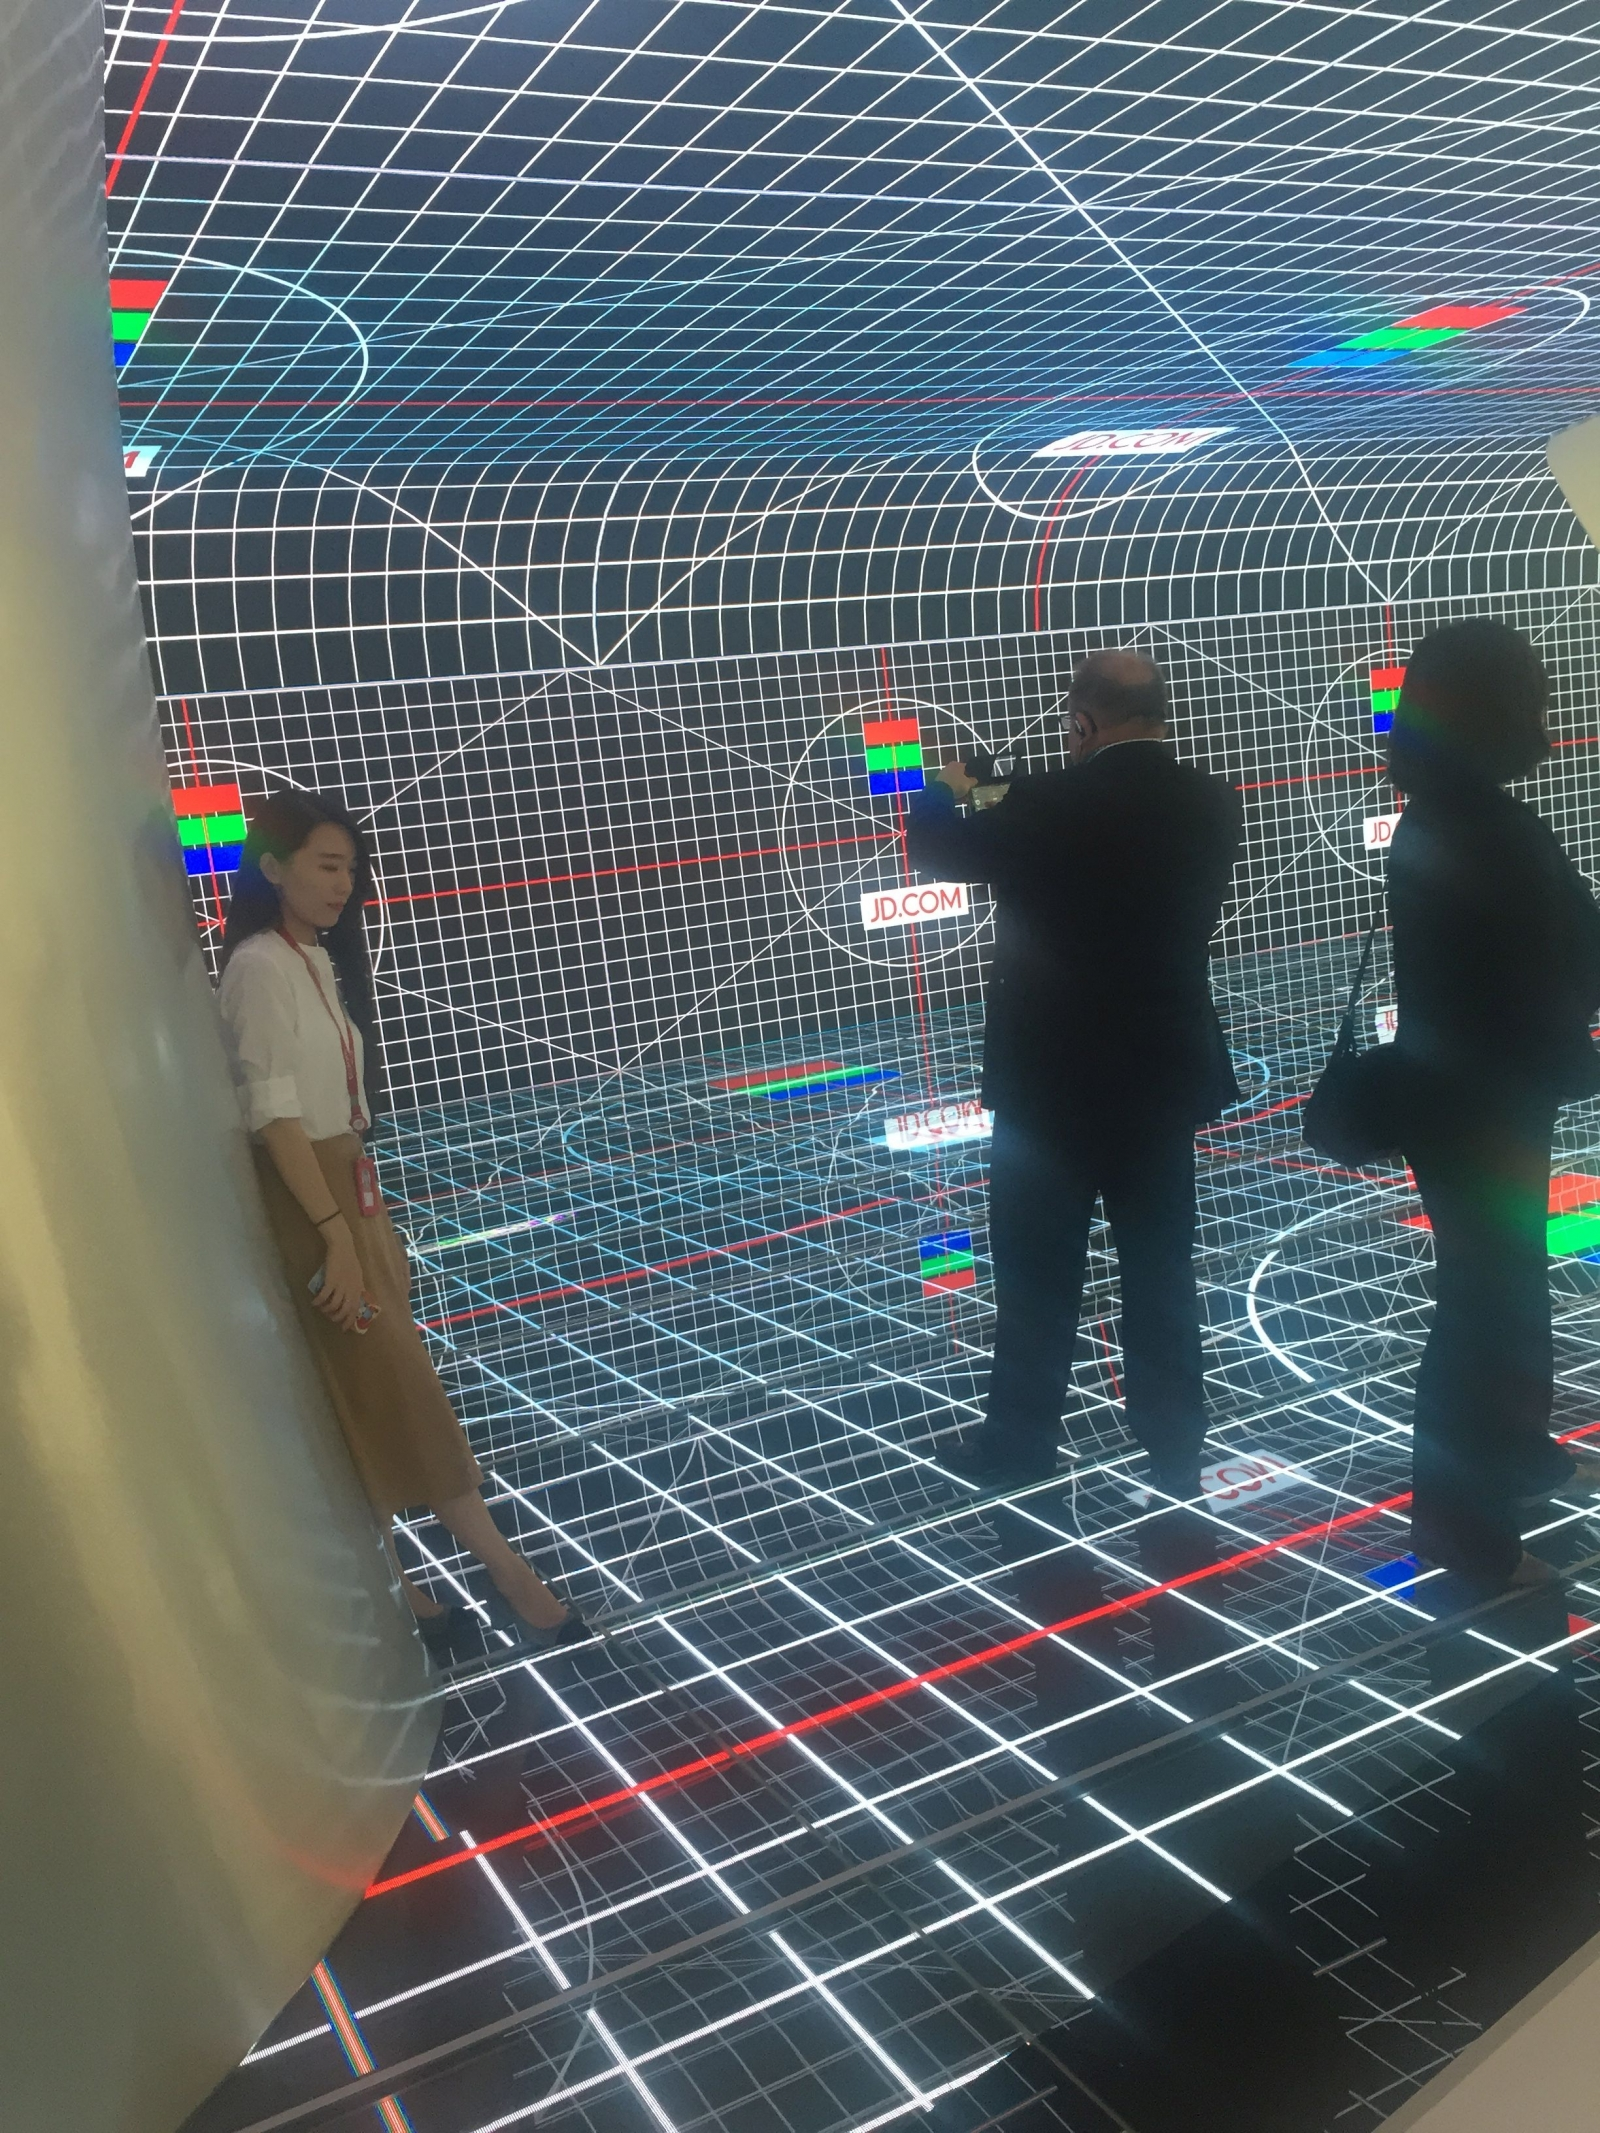 Alibaba visualisation room